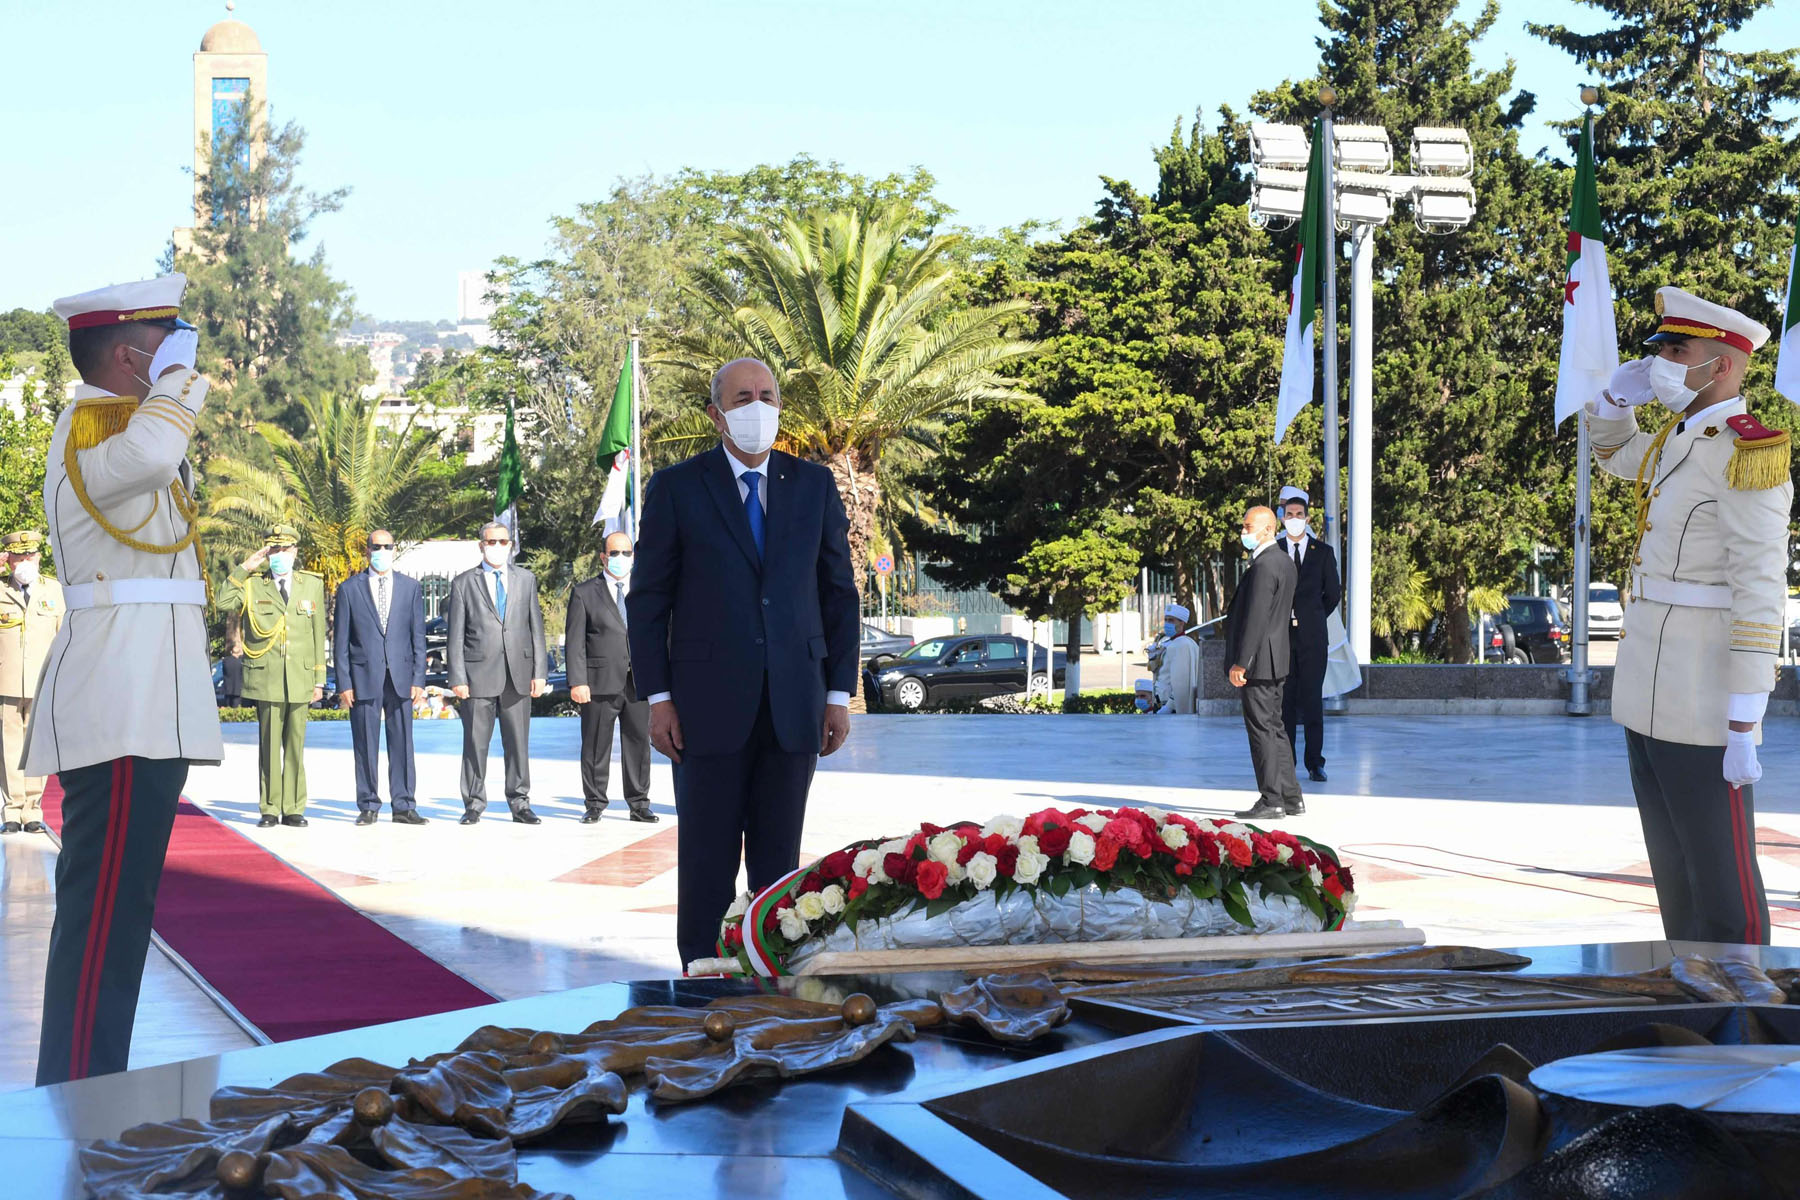 Algeria's President Abdelmajid Tebboune observes a moment of silence during a ceremony to lay to rest the remains of 24 resistance fighters, returned from Paris after more than a century and a half. (AFP)